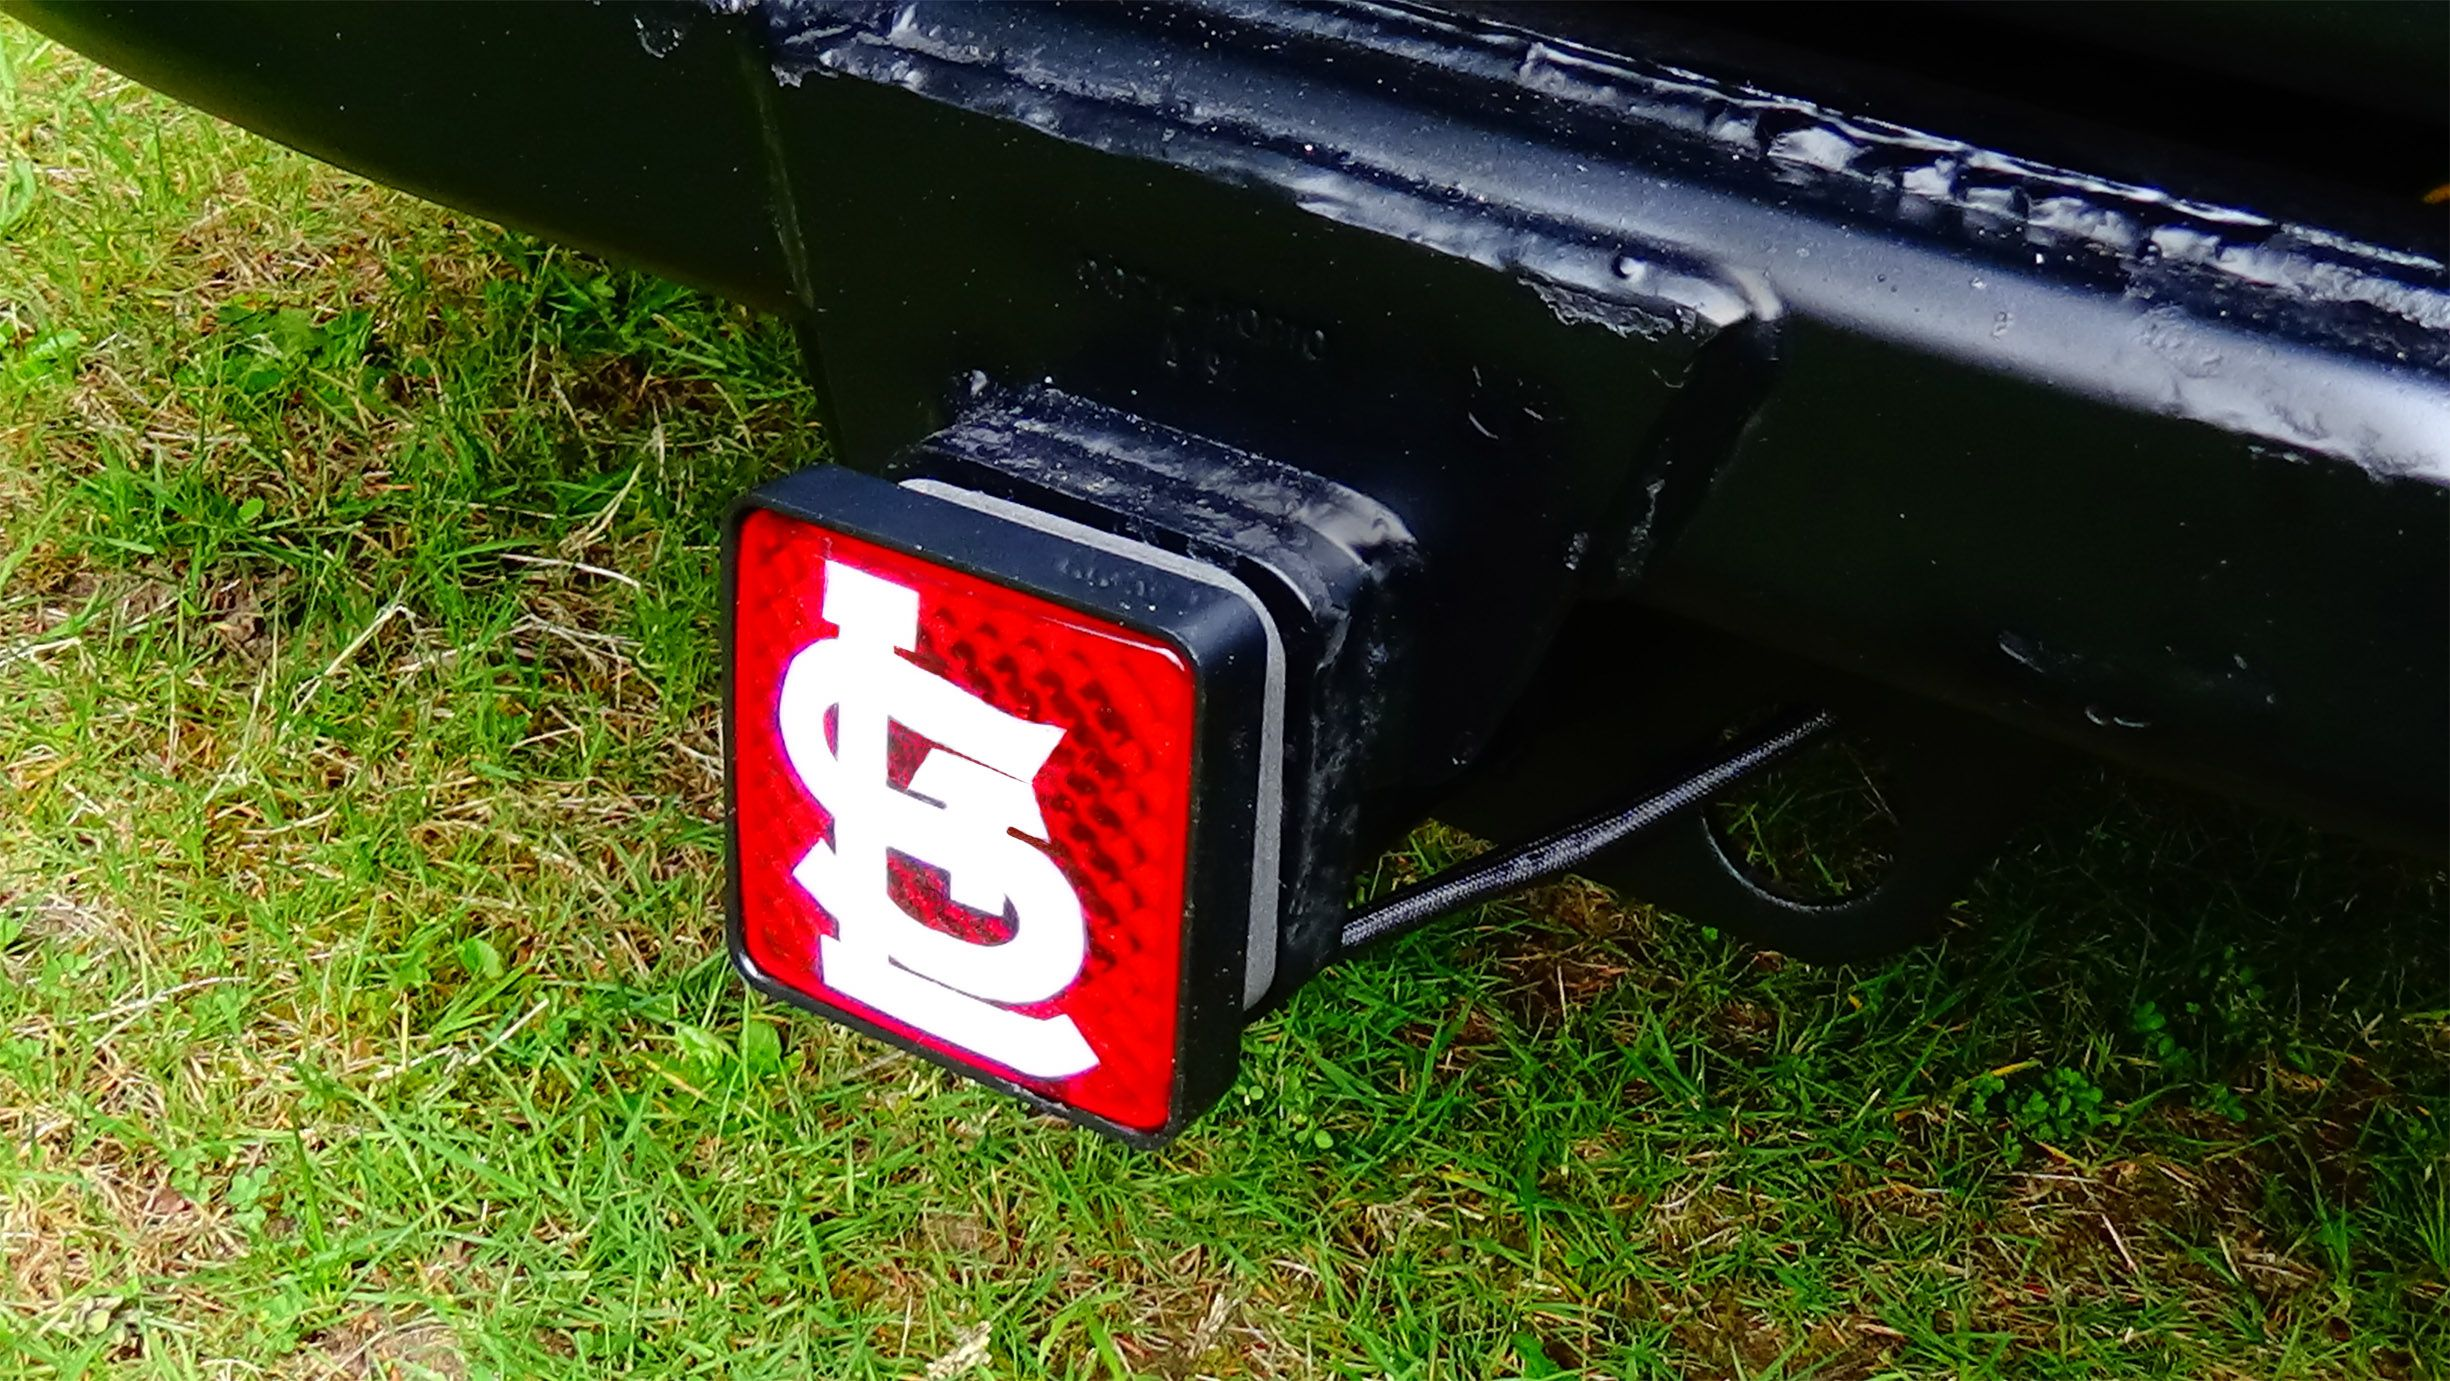 Lighted Trailer Hitch Cover For Our Cardinals Light